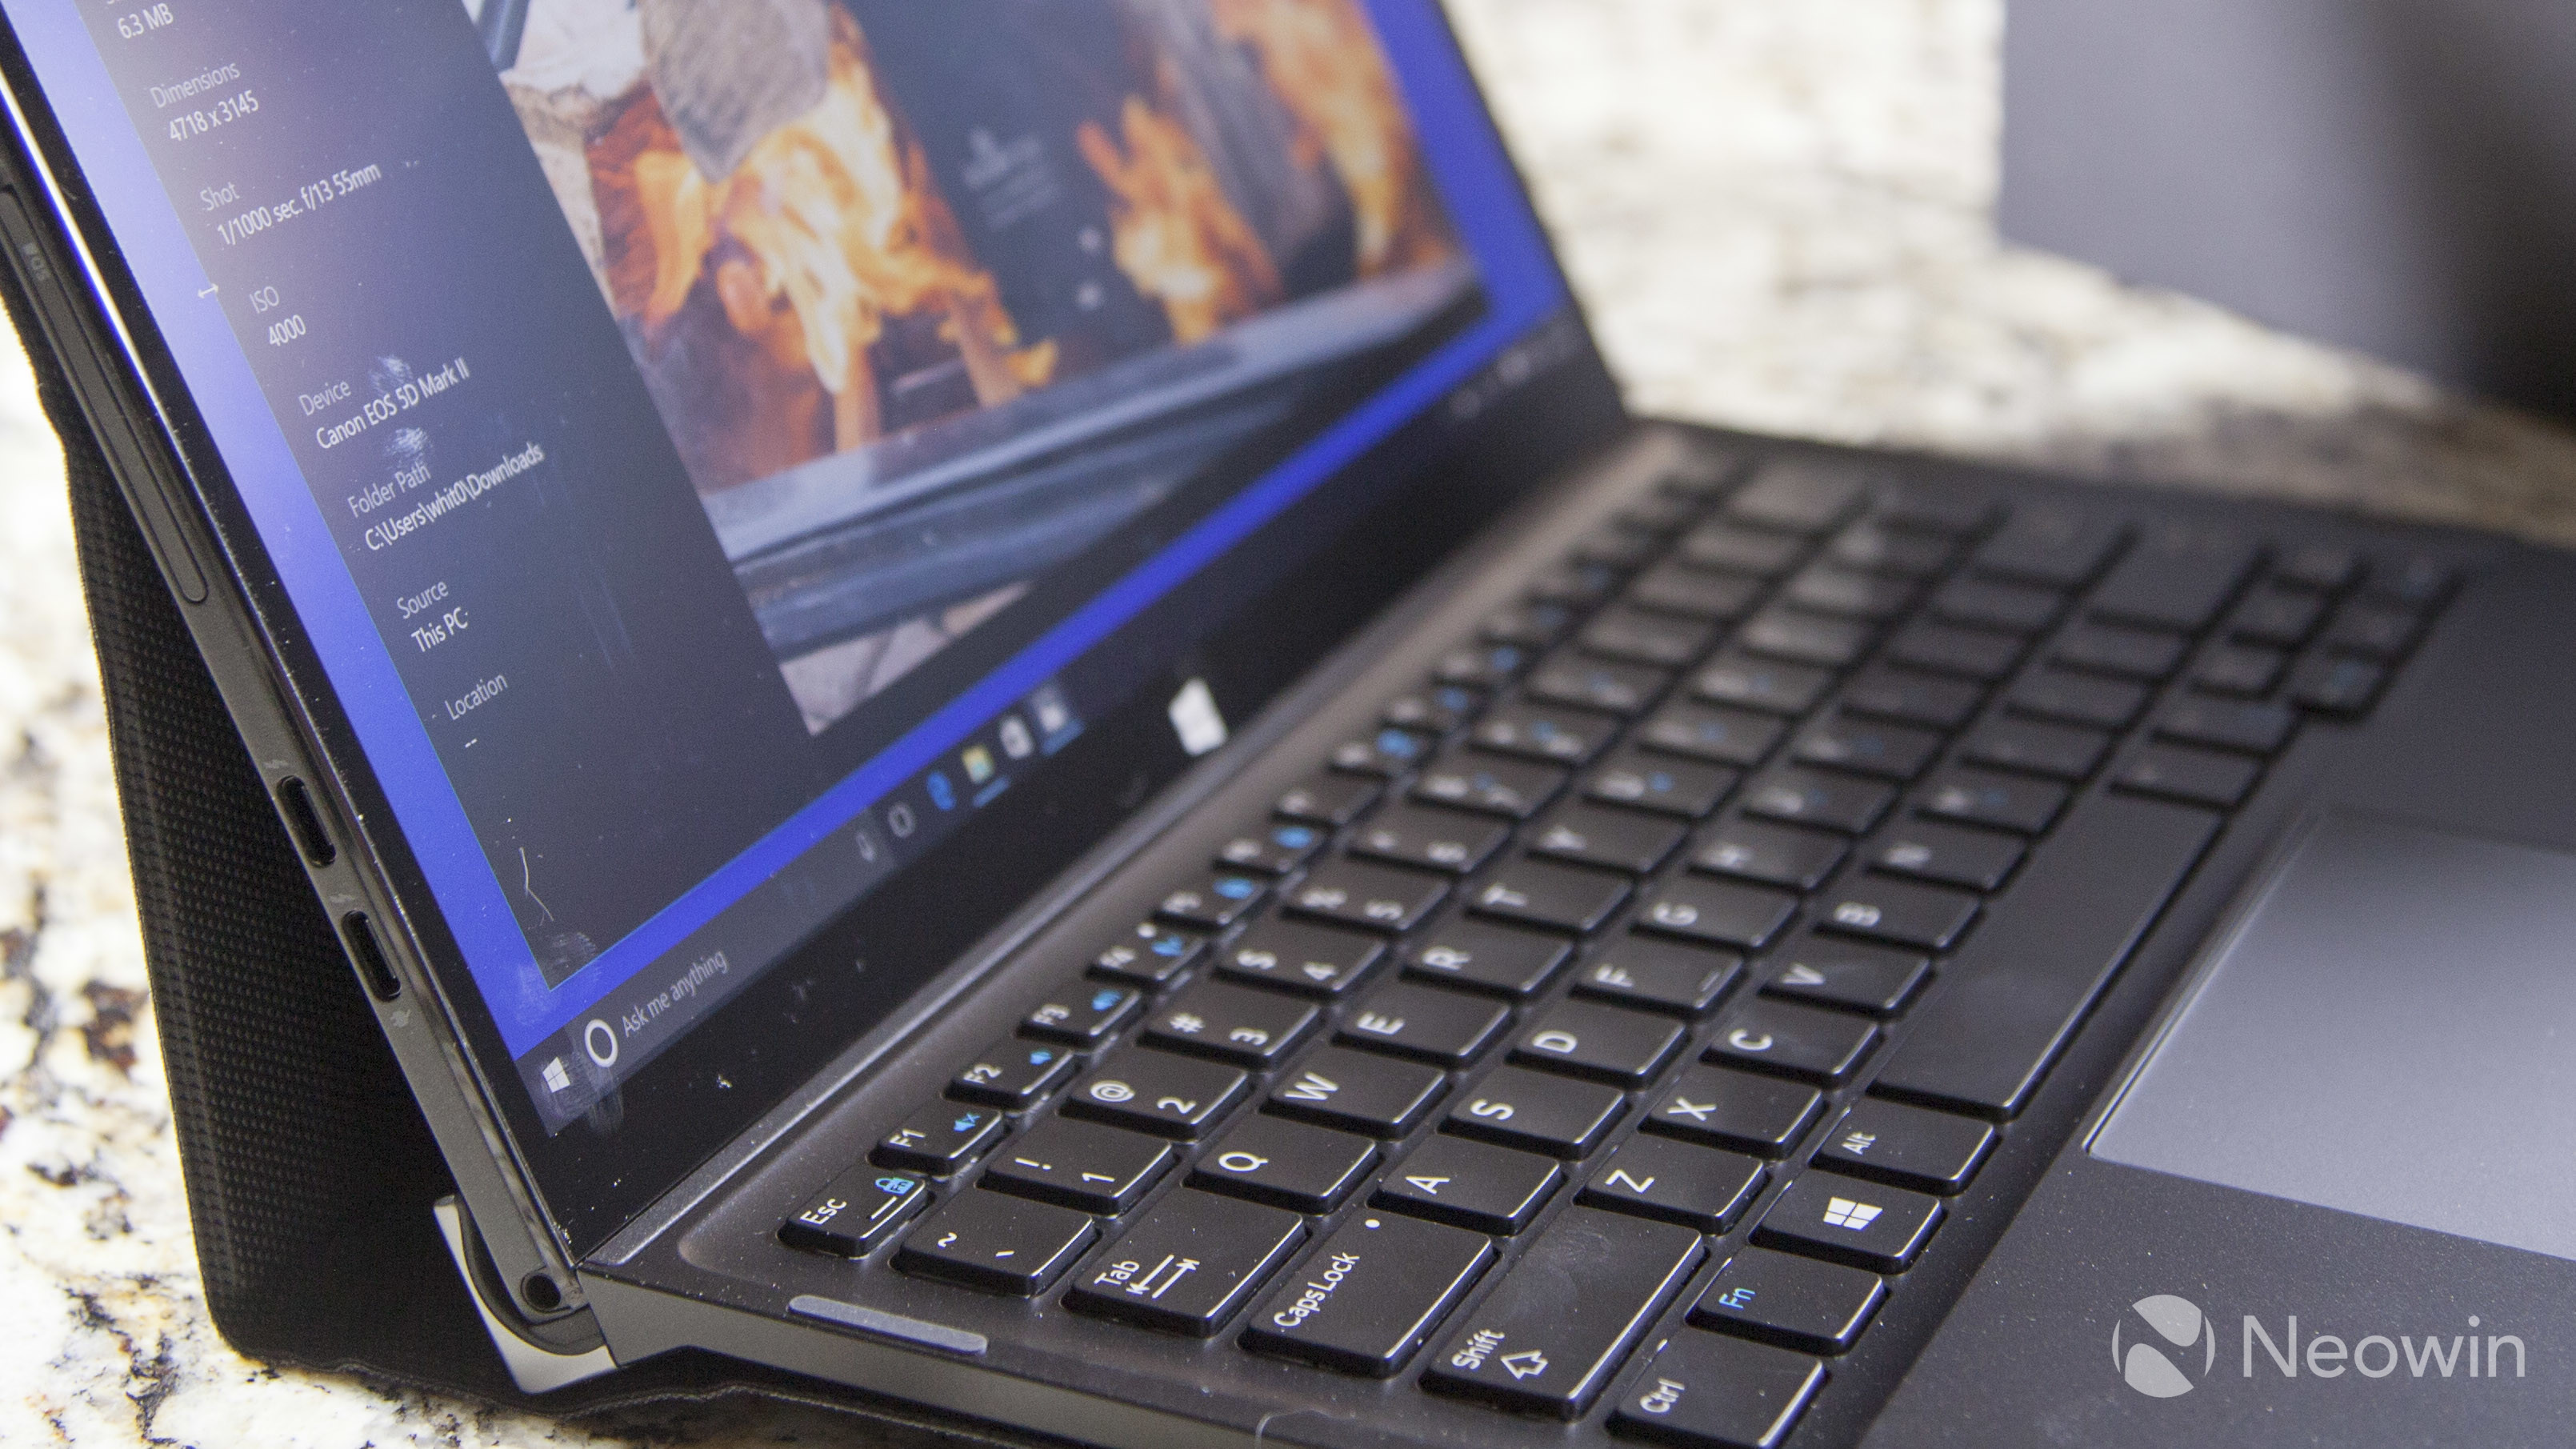 Review of the Dell XPS 12 2-in-1, a Surface Pro competitor that